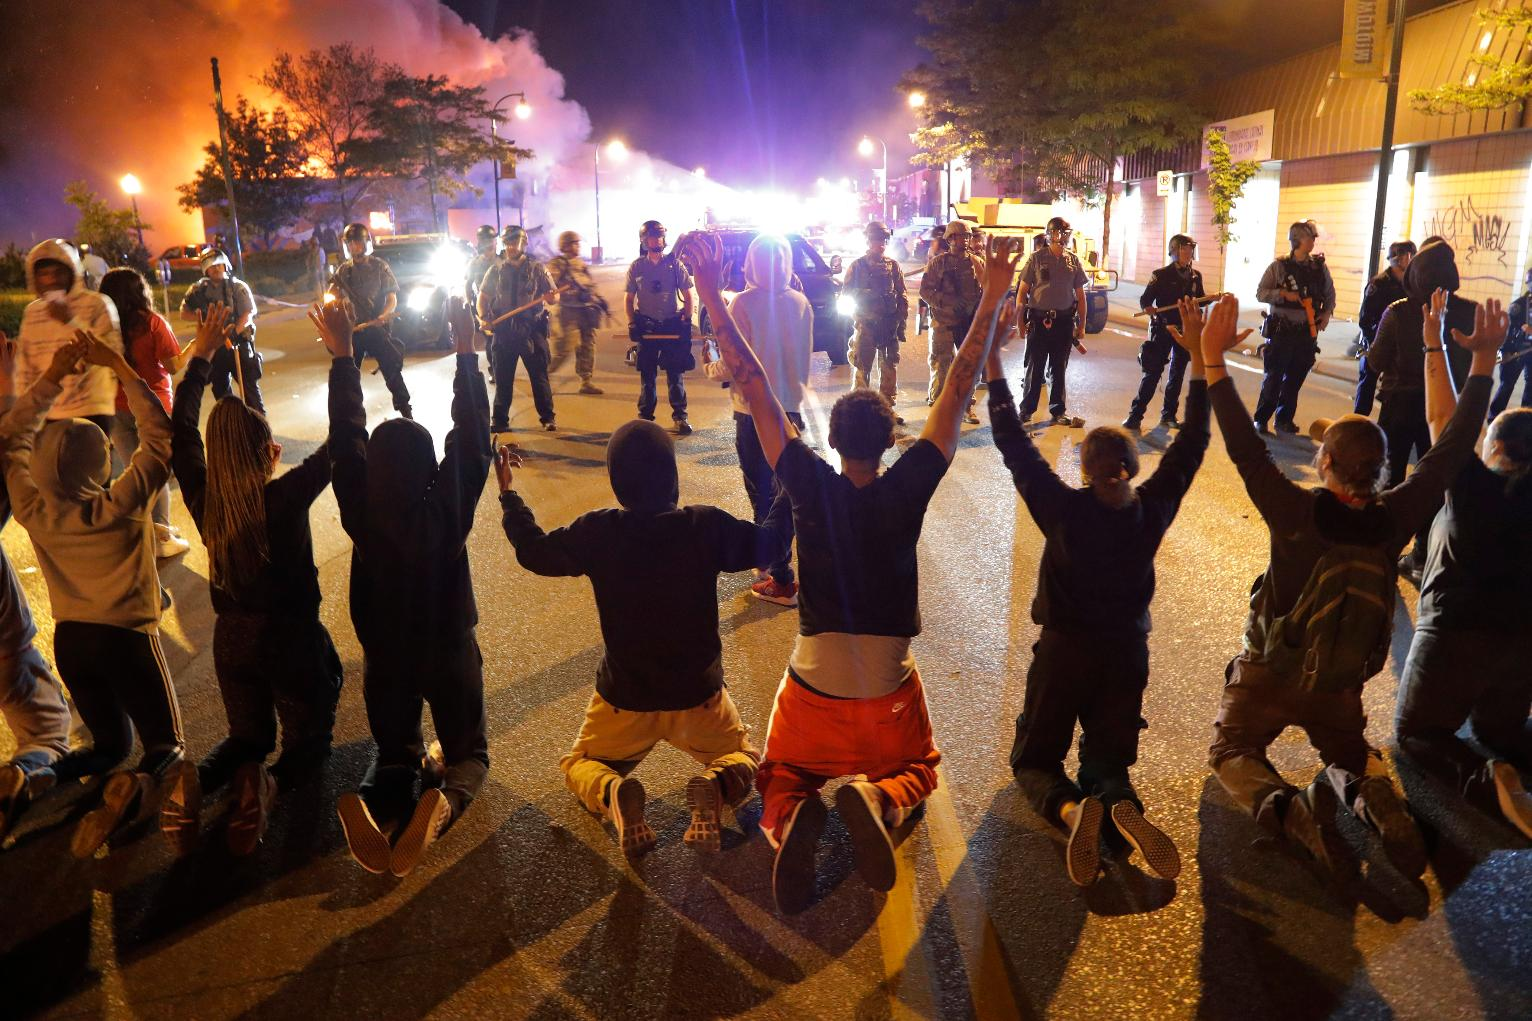 Thousands ignore Minneapolis curfew as US protests spread